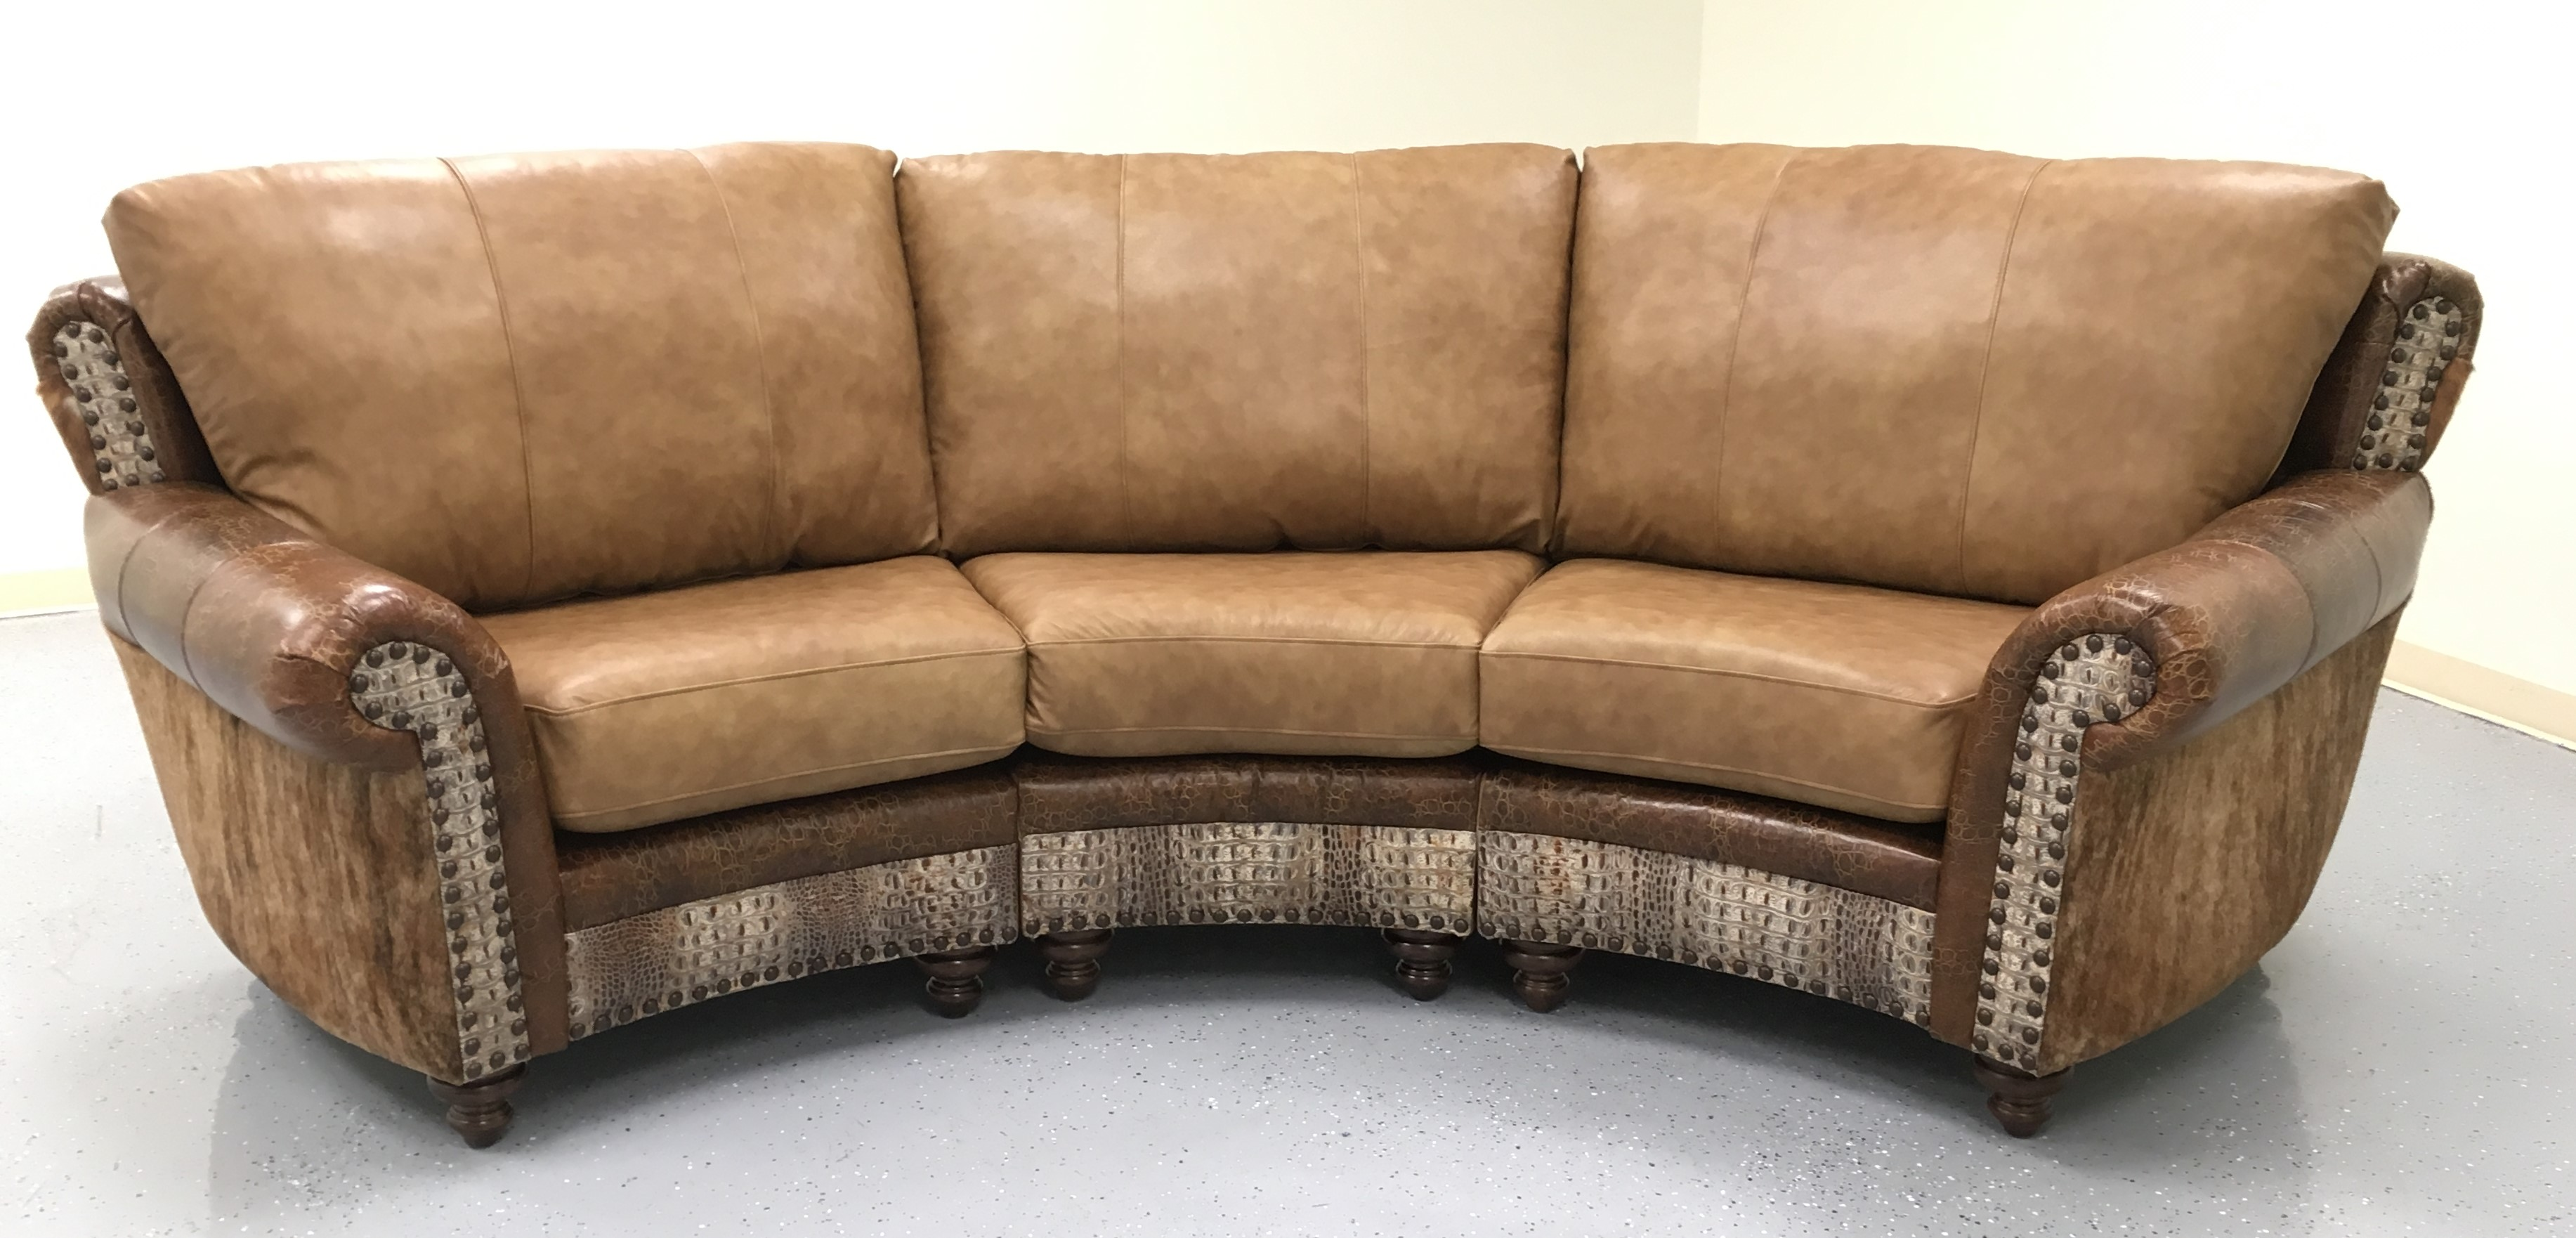 Highlander Curved Sofa